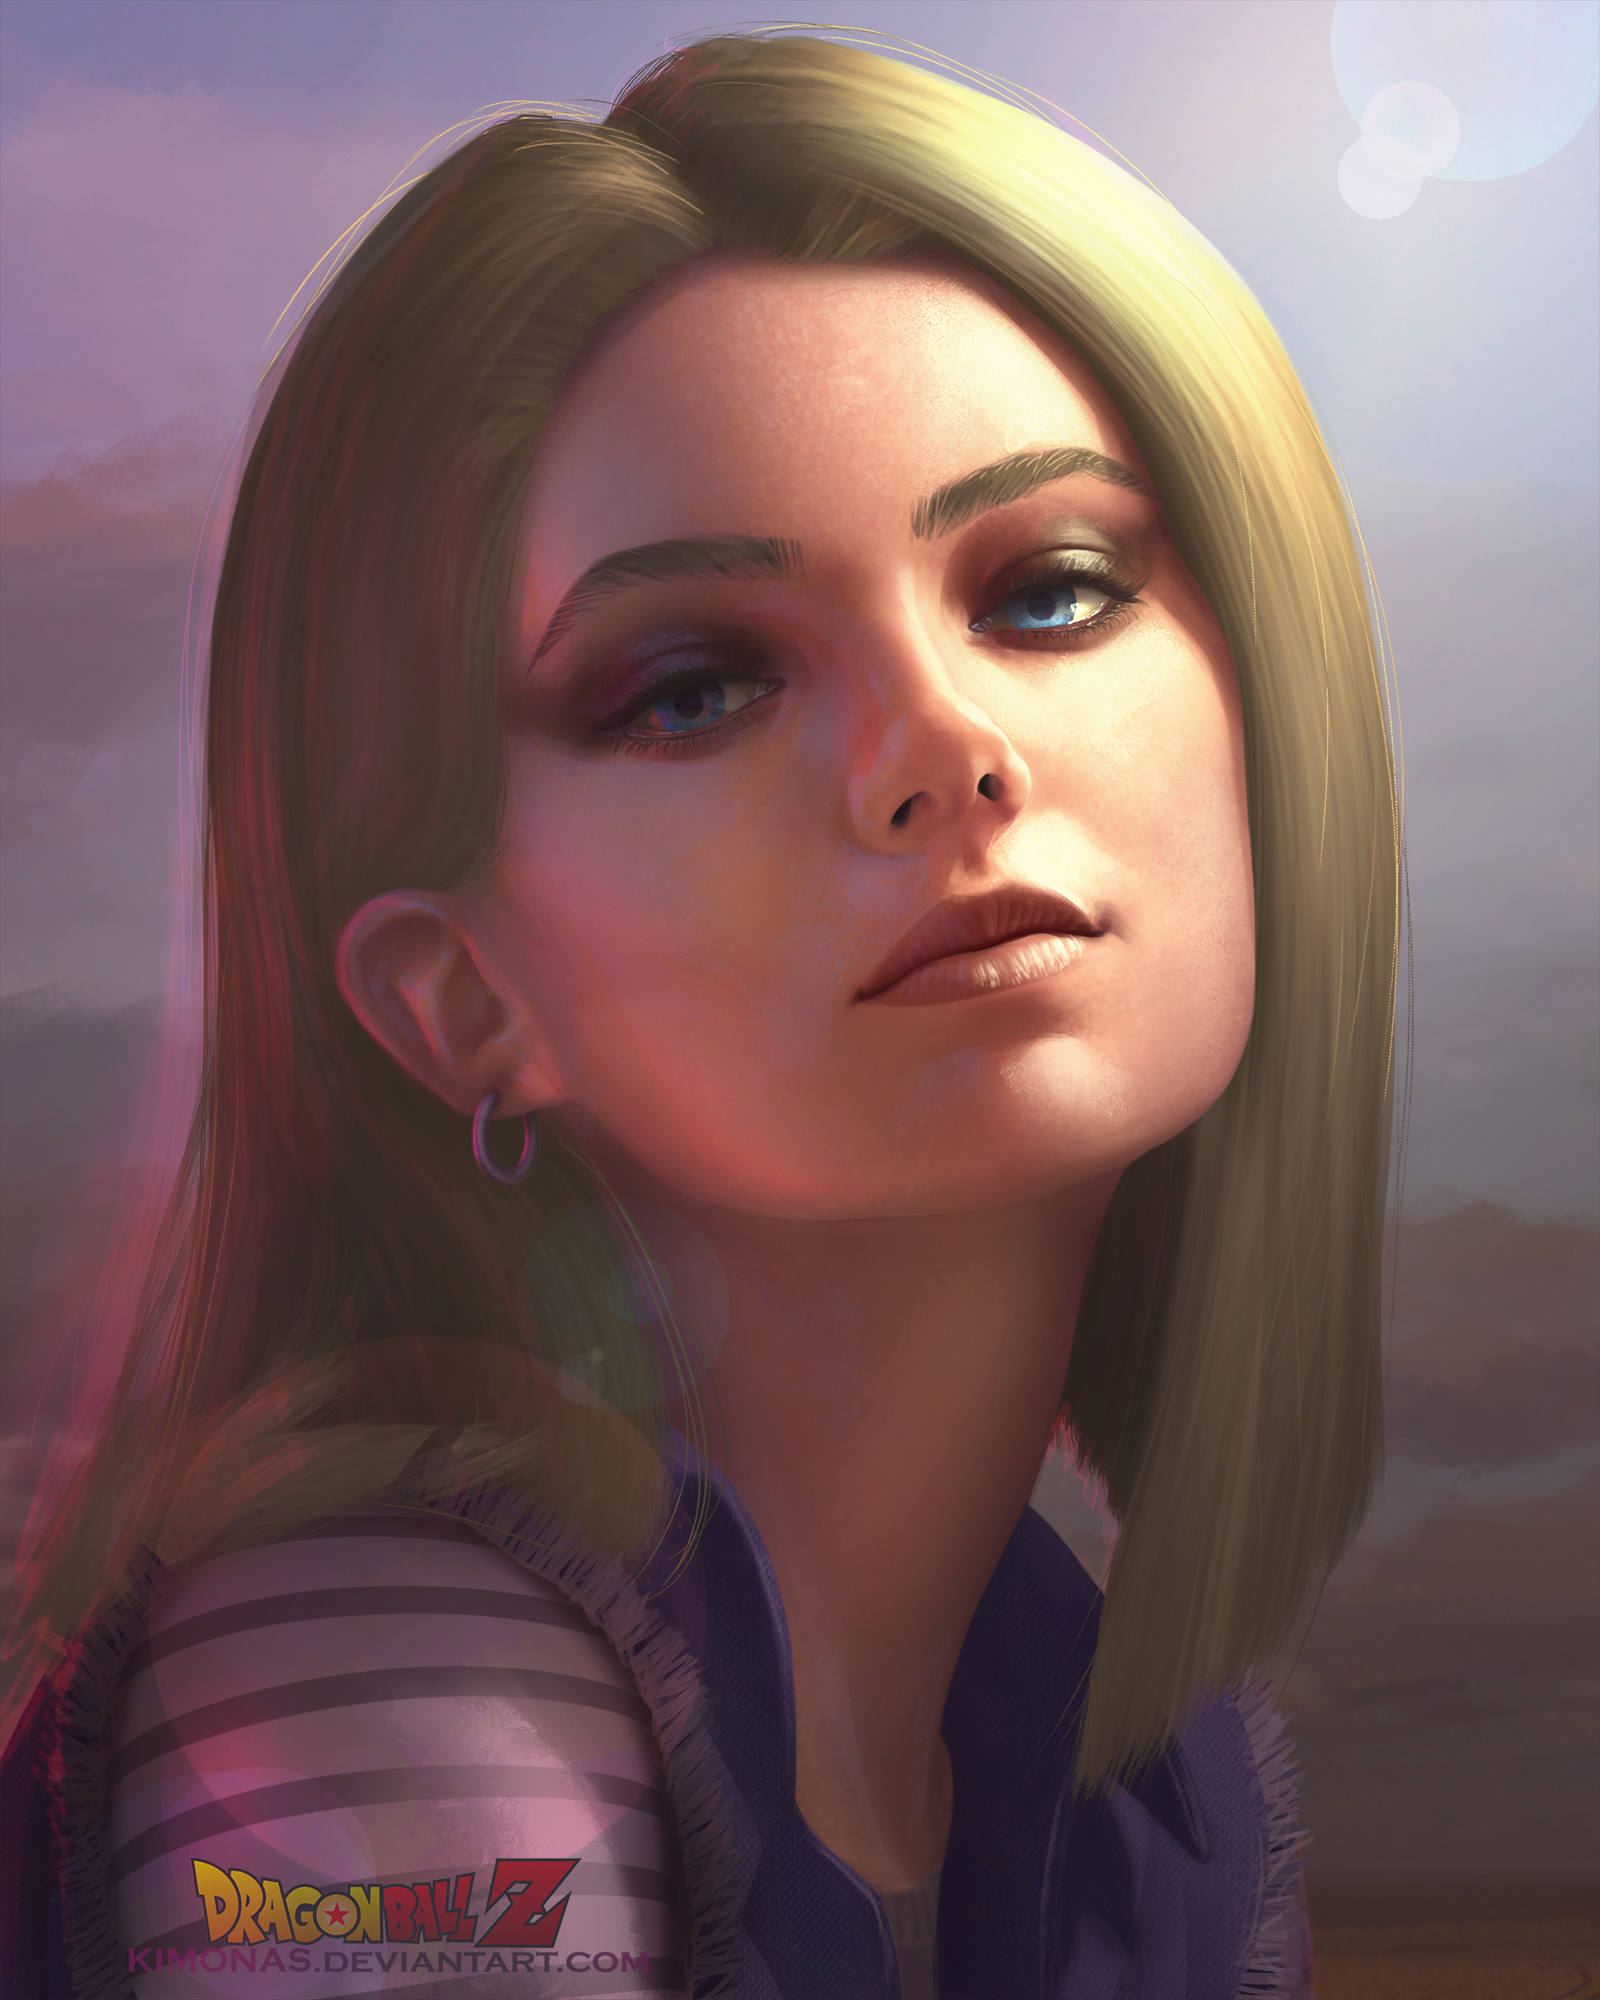 Android 18 And Tail Deviantart: Realistic Android 18 By Kimonas On DeviantArt